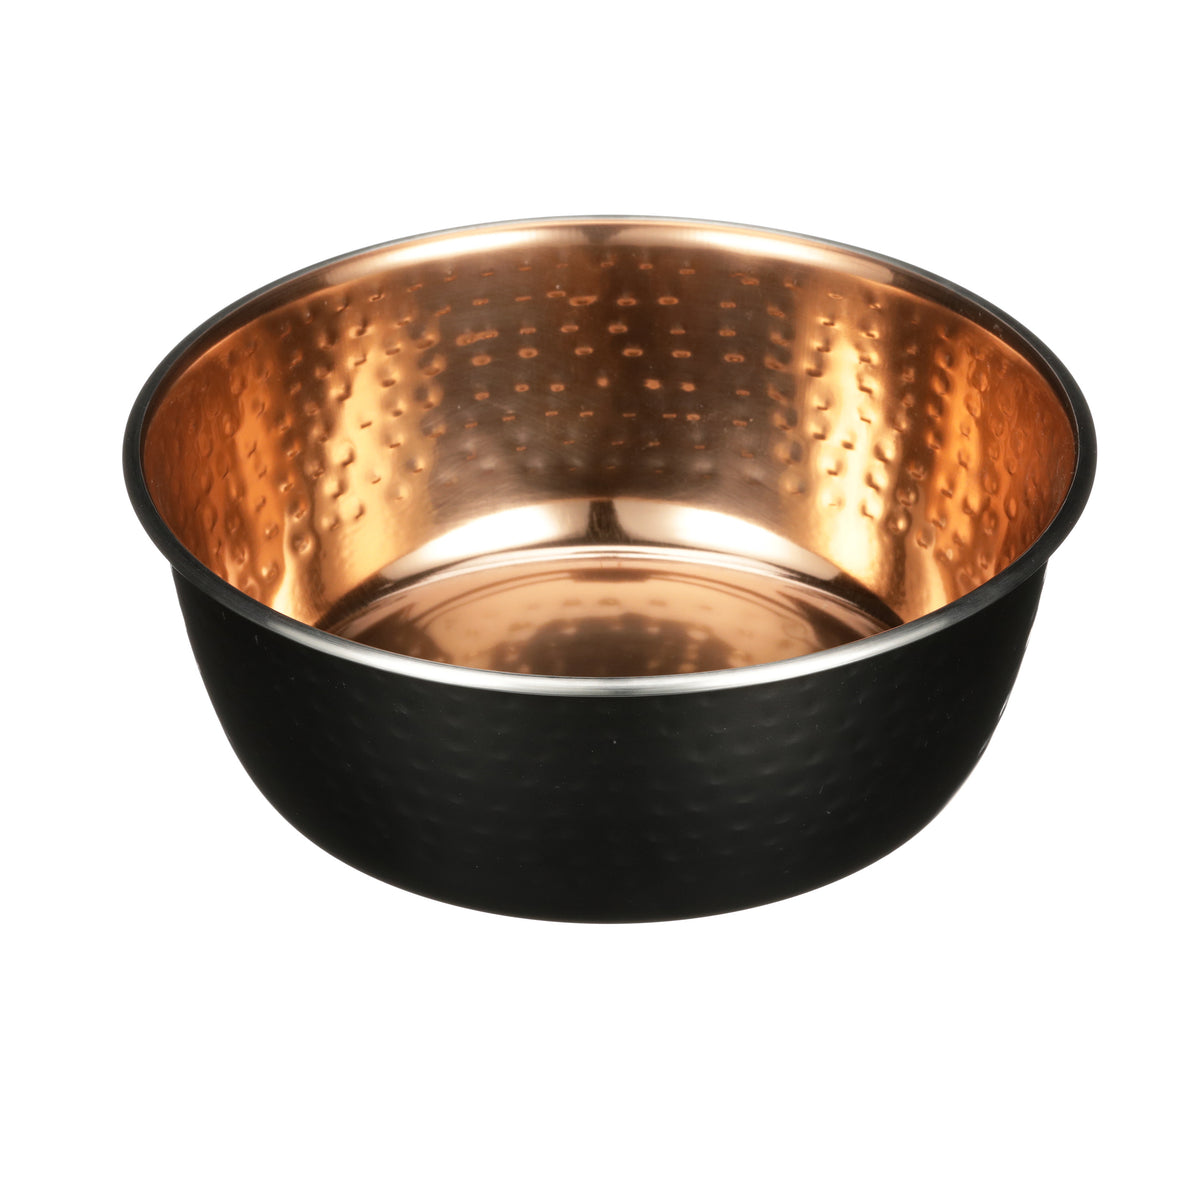 Black Hammered Copper Finish Bowls